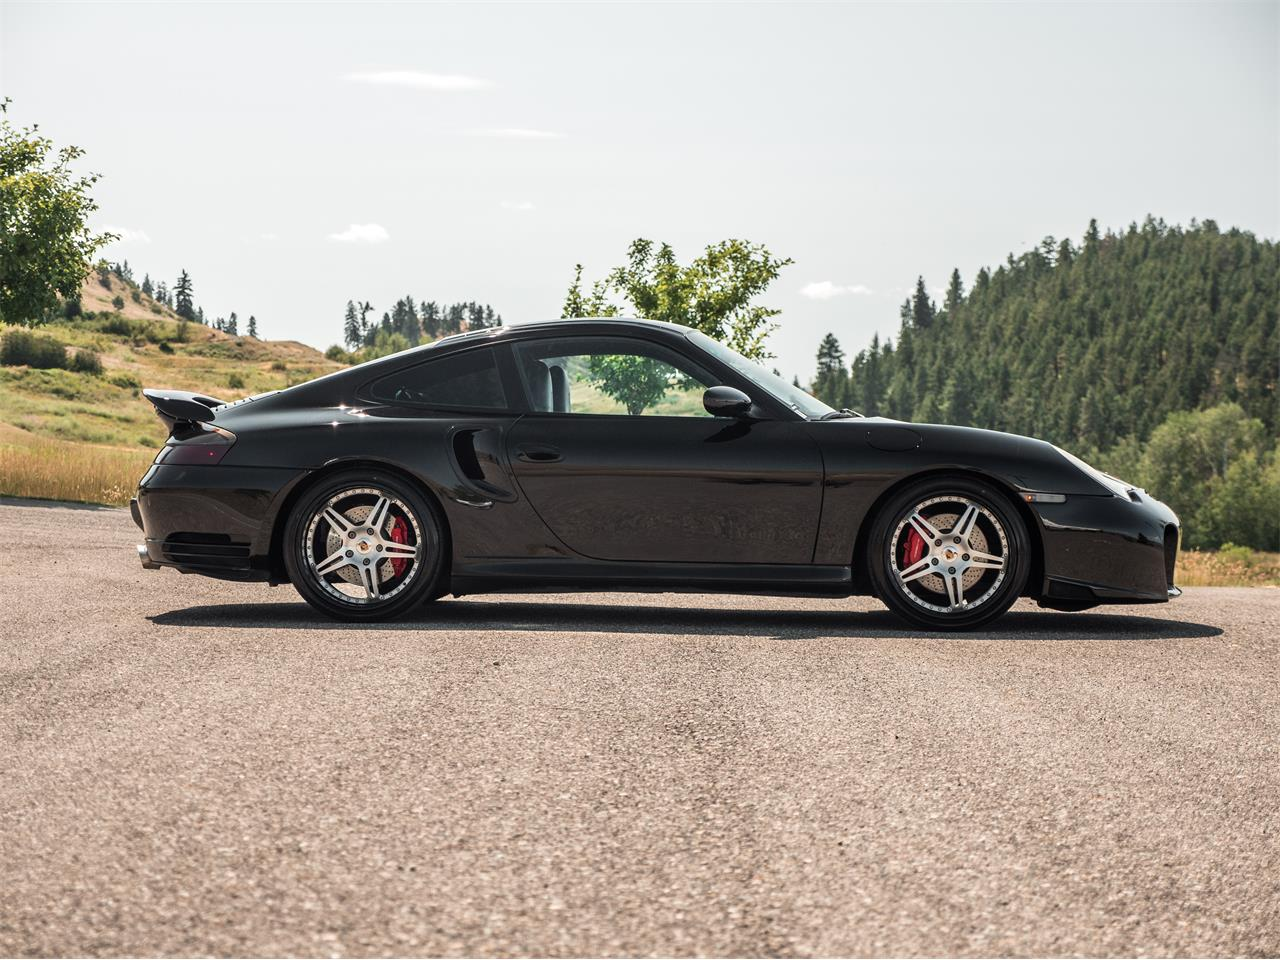 2003 Porsche 911 Carrera (CC-1242014) for sale in Kelowna, British Columbia